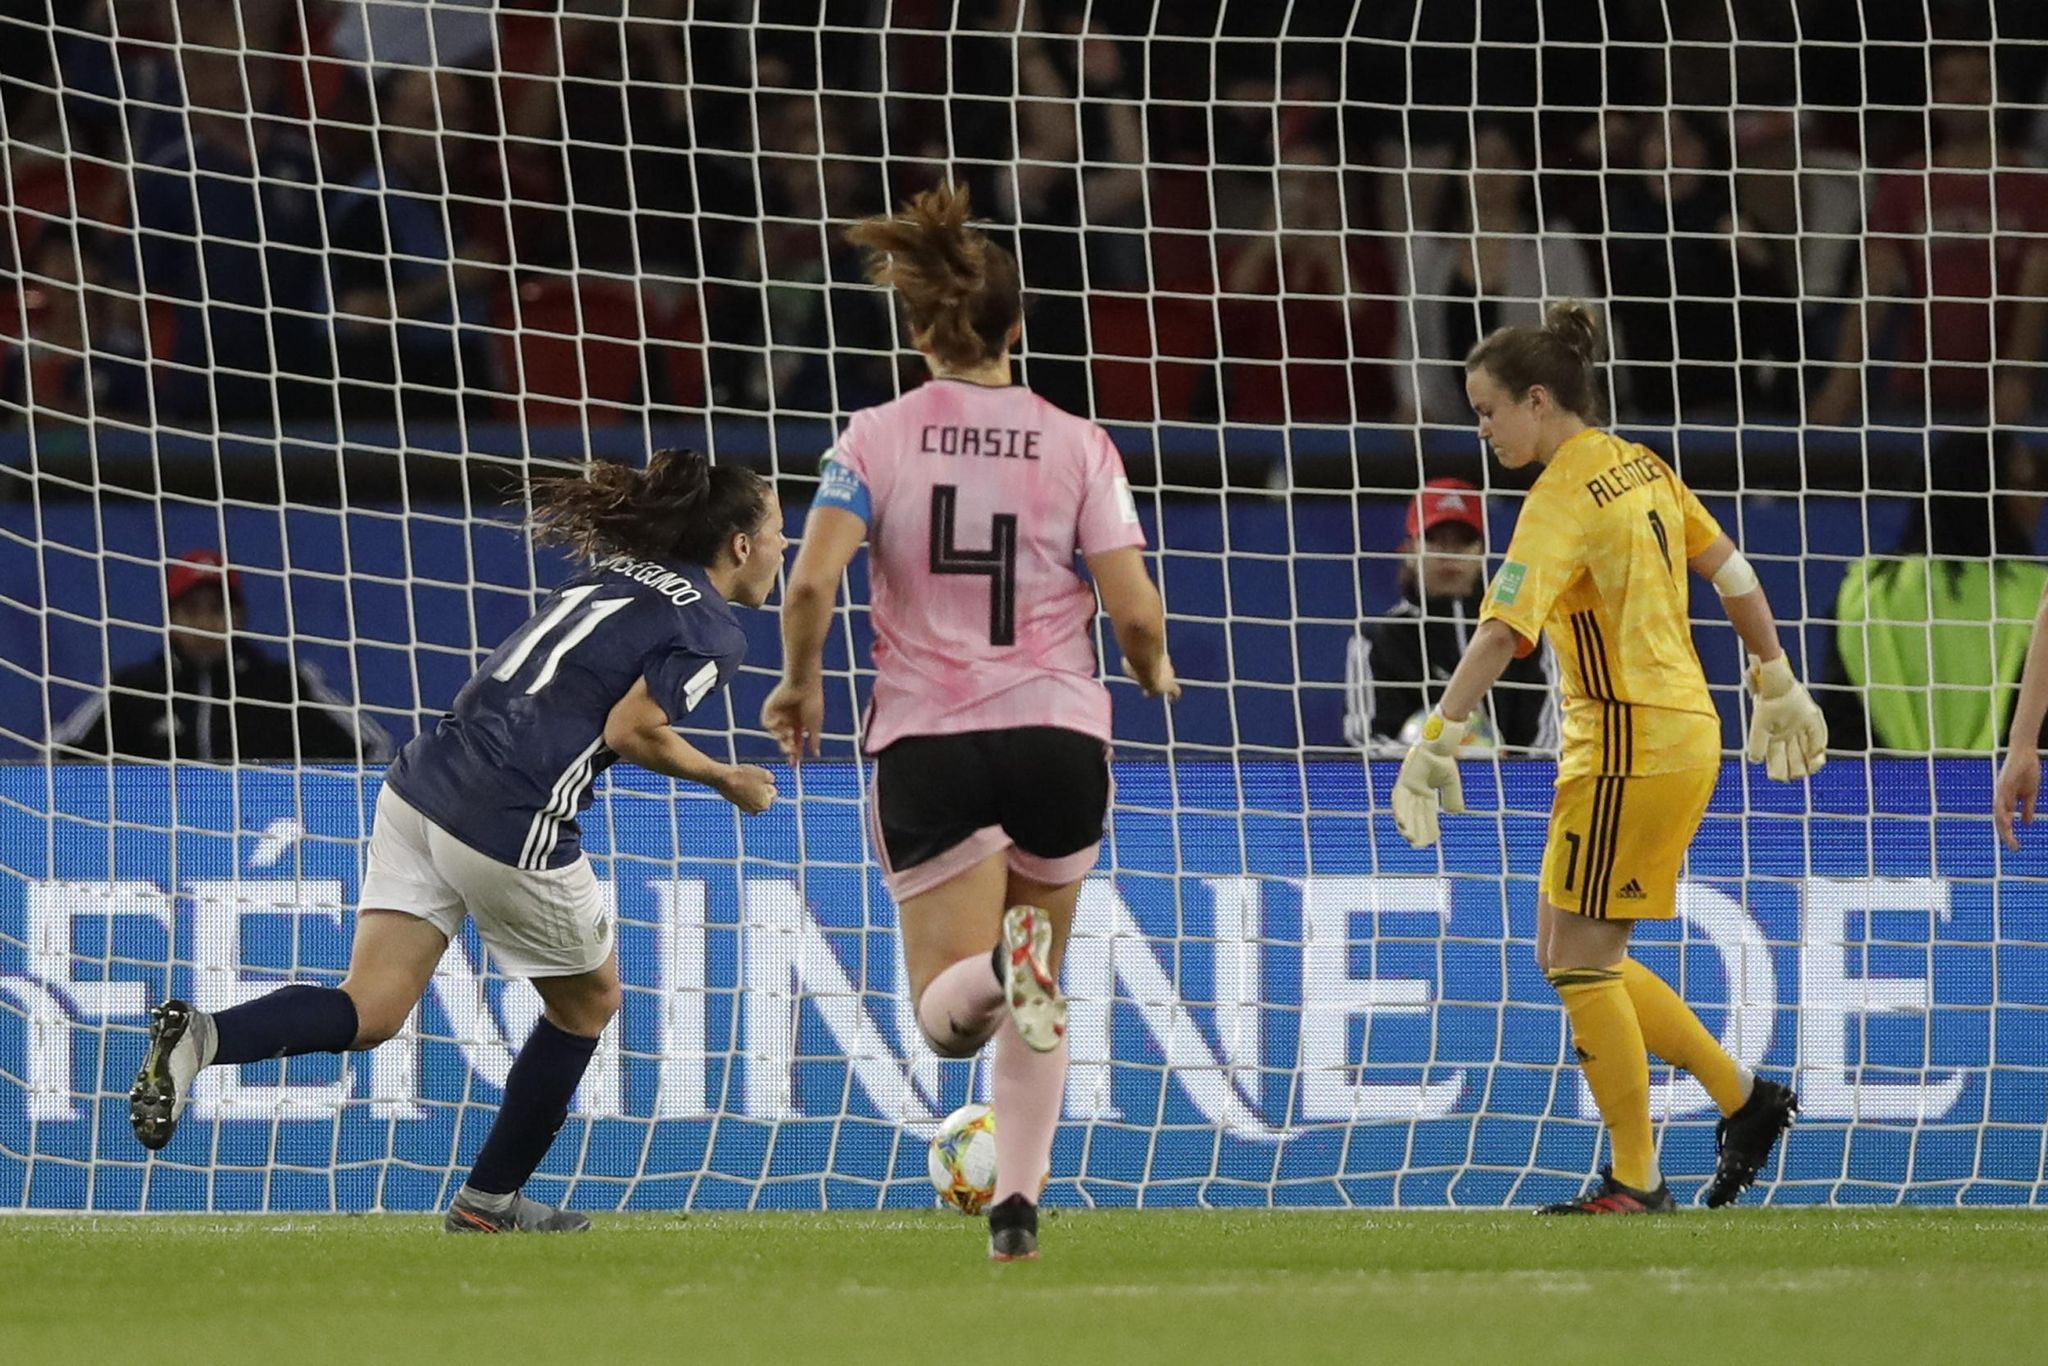 France_scotland_argentina_wwcup_soccer_78204_s2048x1366